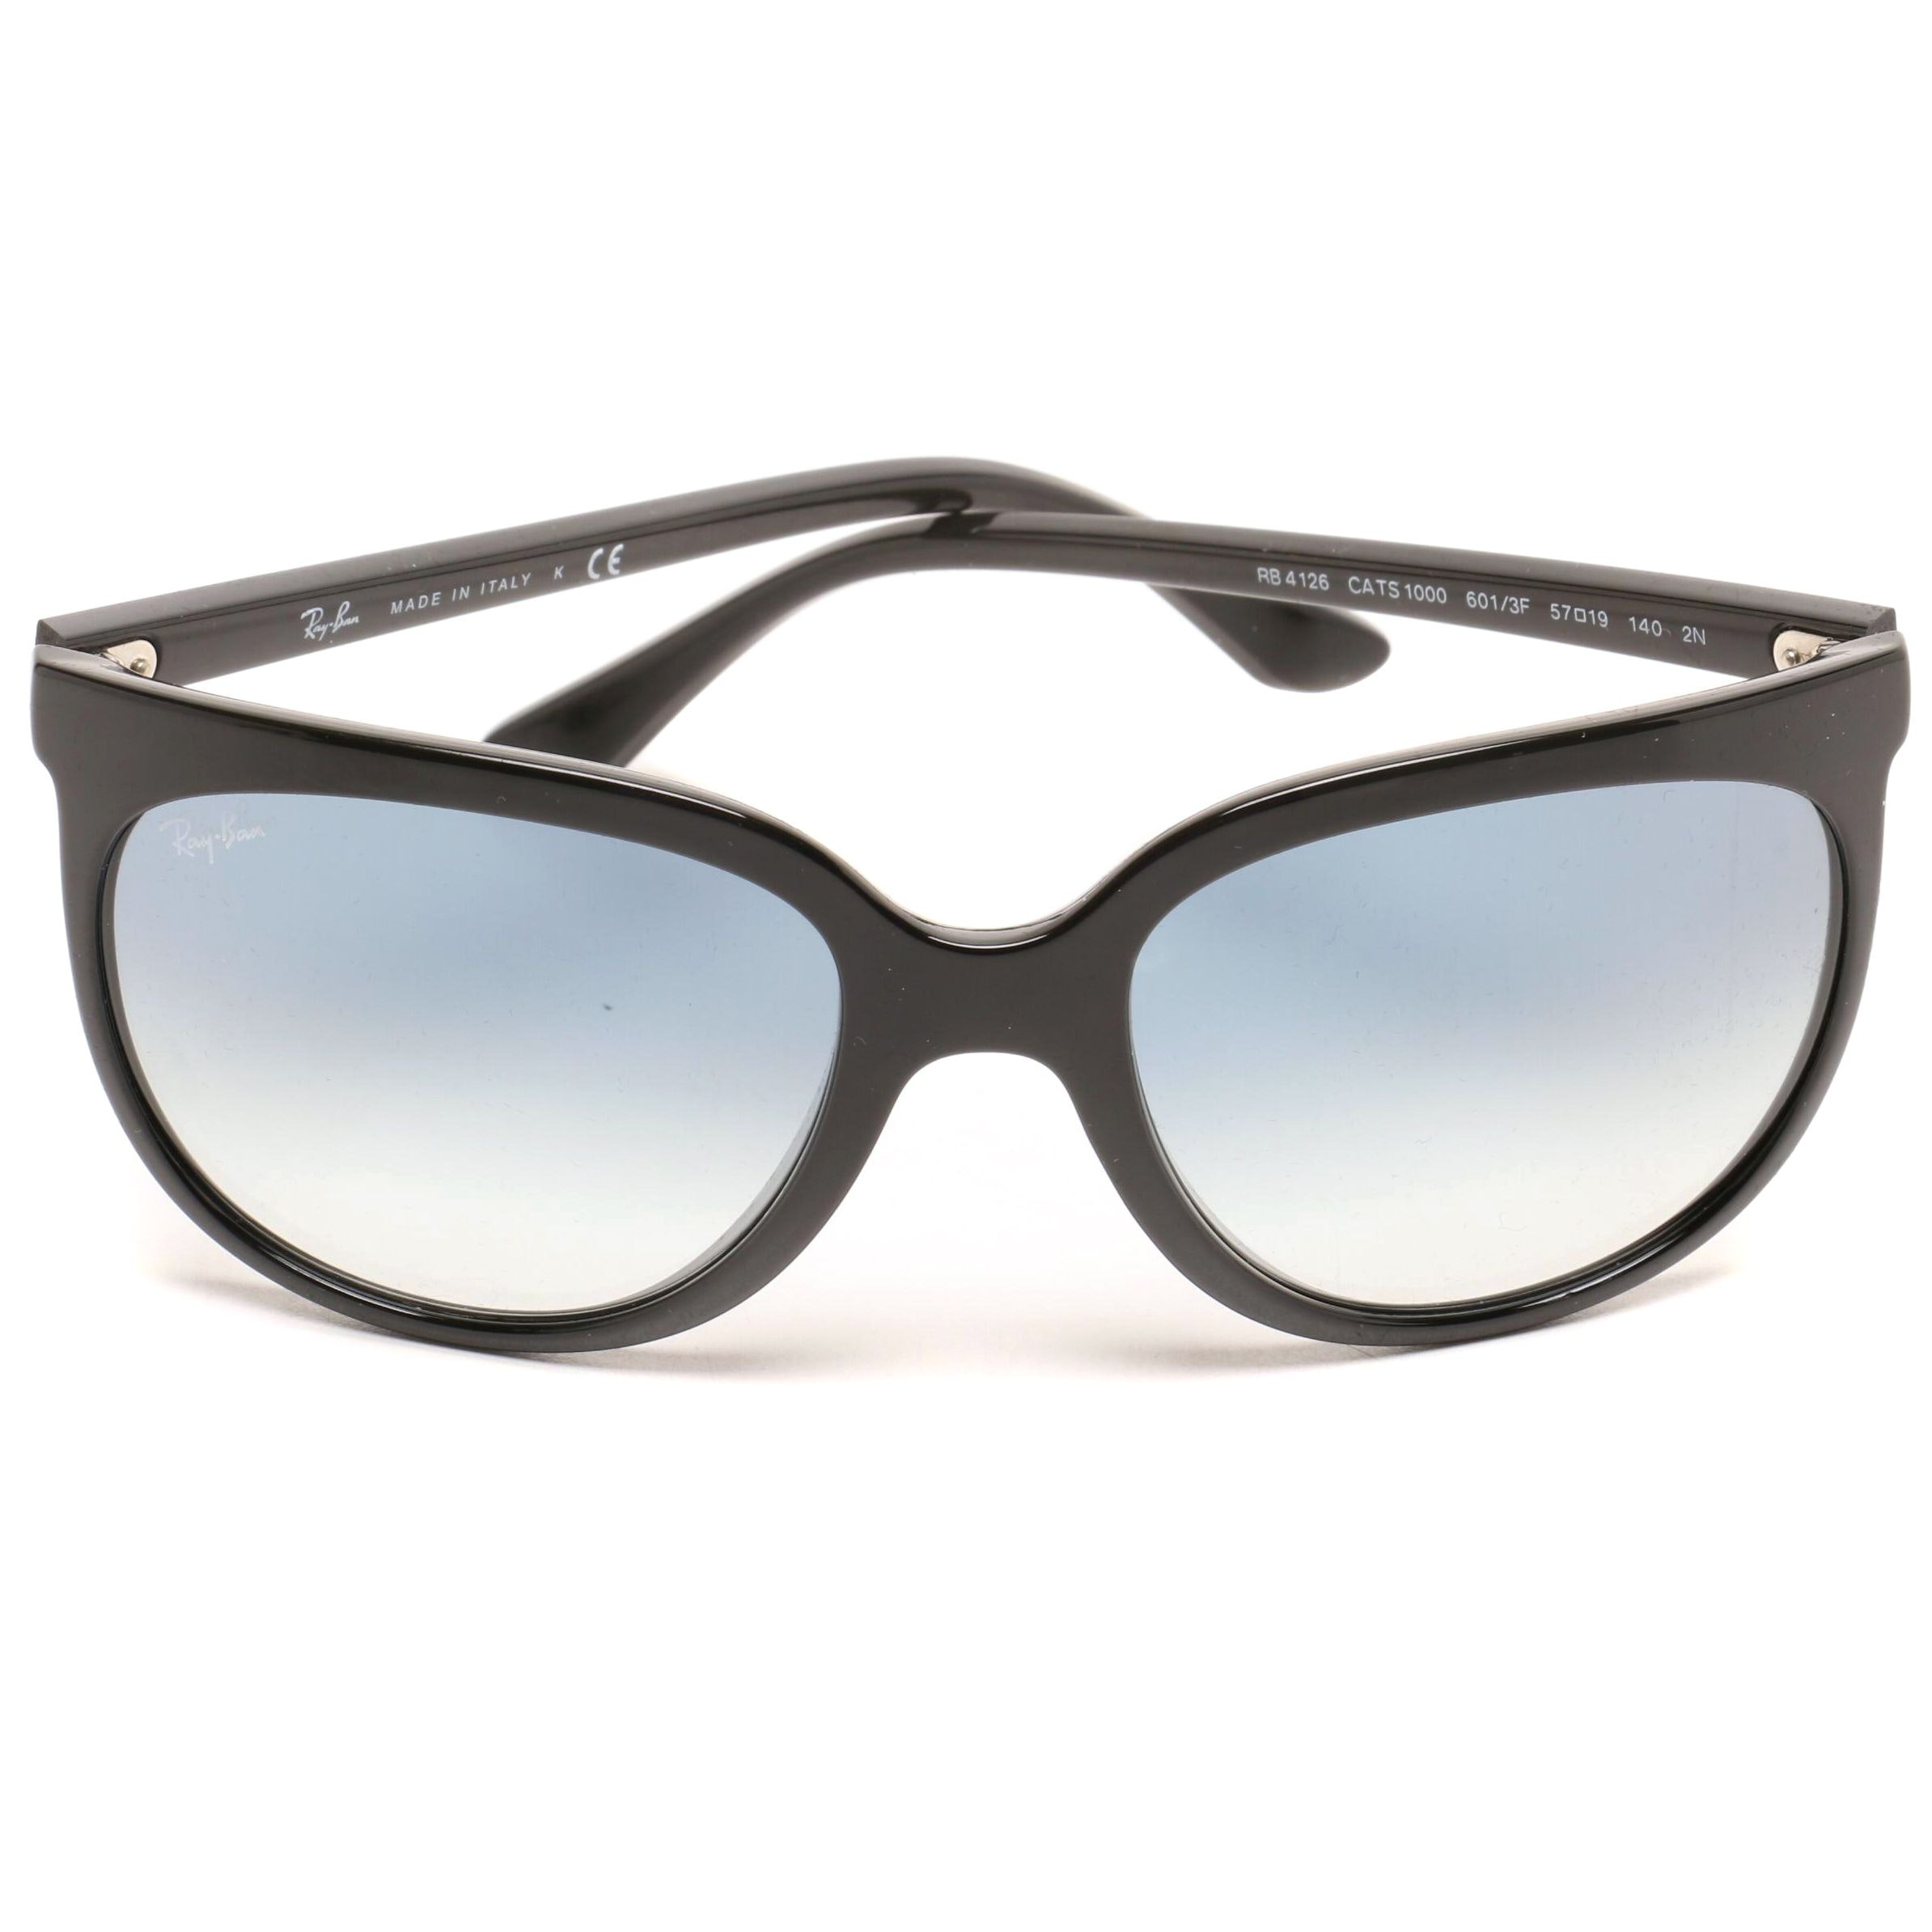 Ray-Ban Black Cats RB4126 Cat Eye Sunglasses with Case, Made in Italy